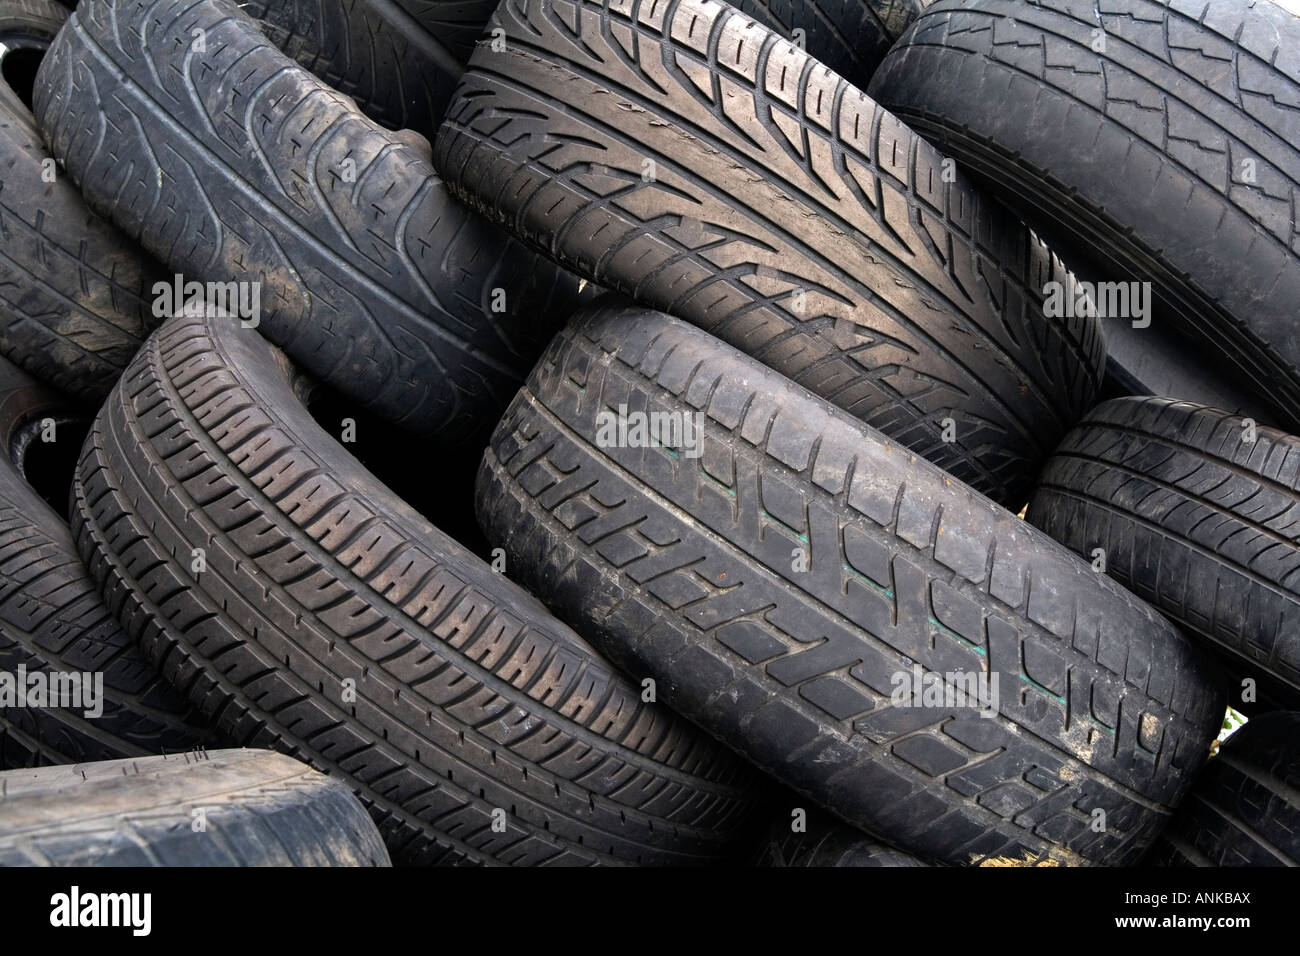 Rubber tyres piled up before recycling - Stock Image